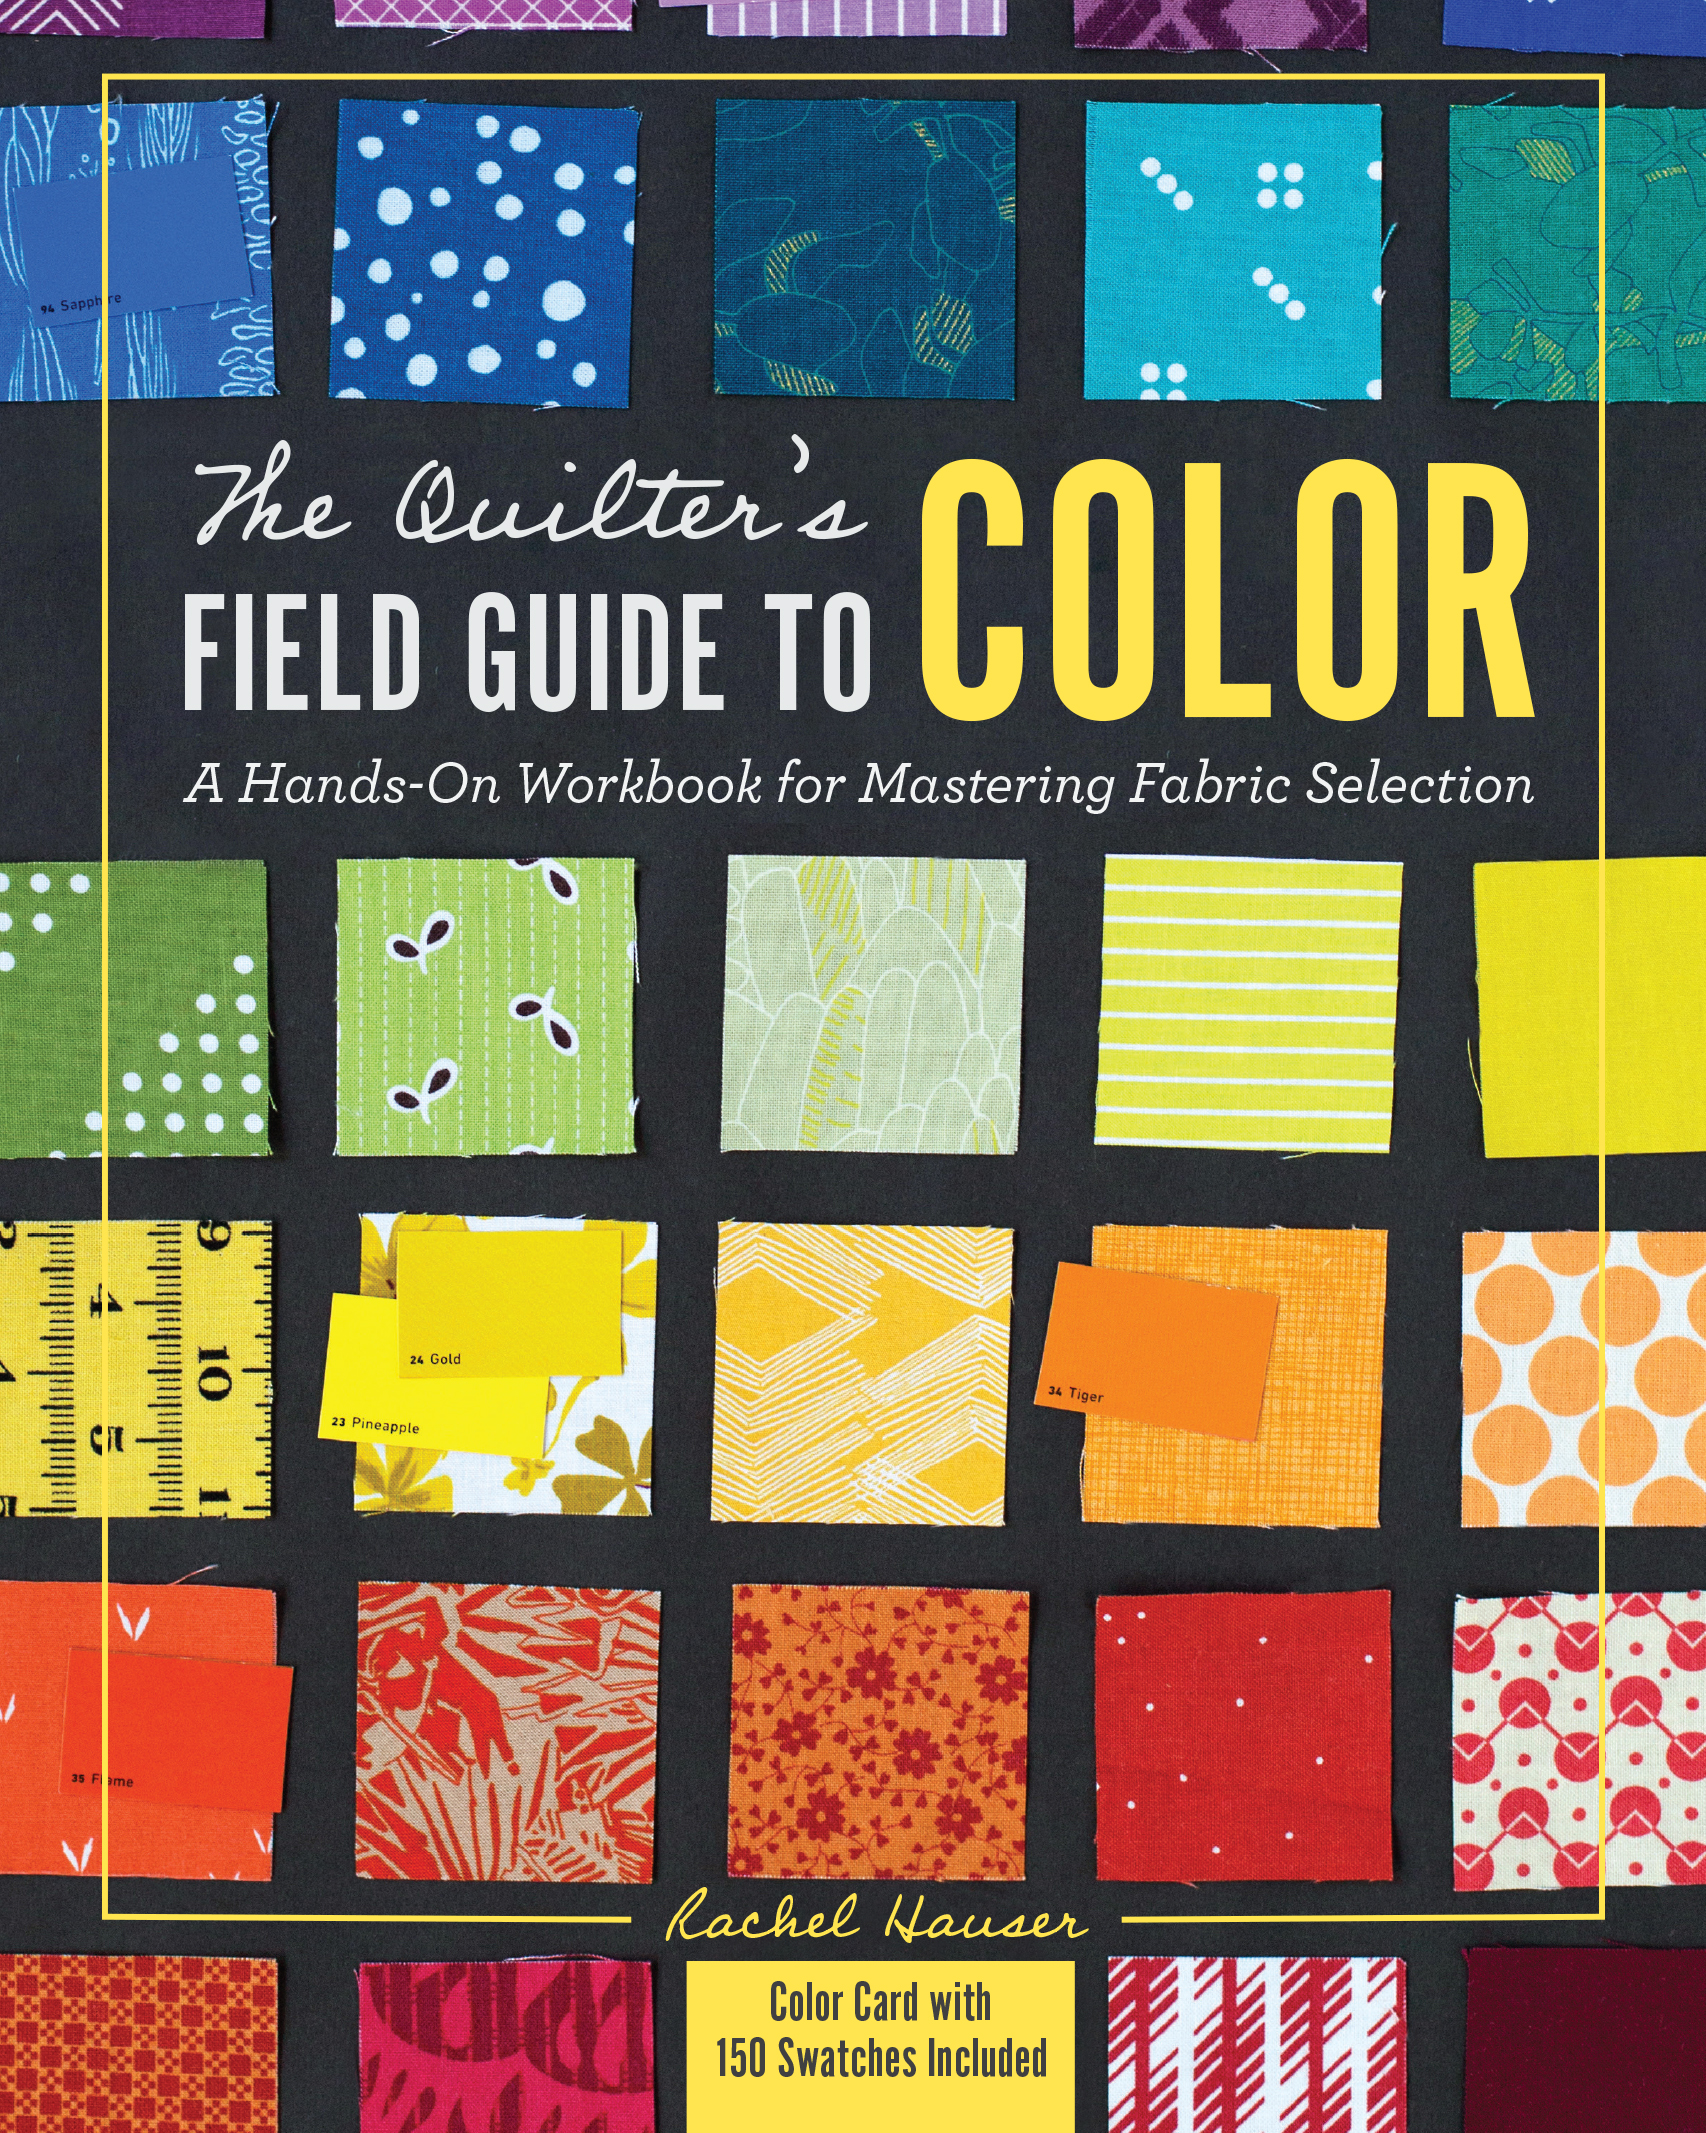 Field Guide cover.jpg